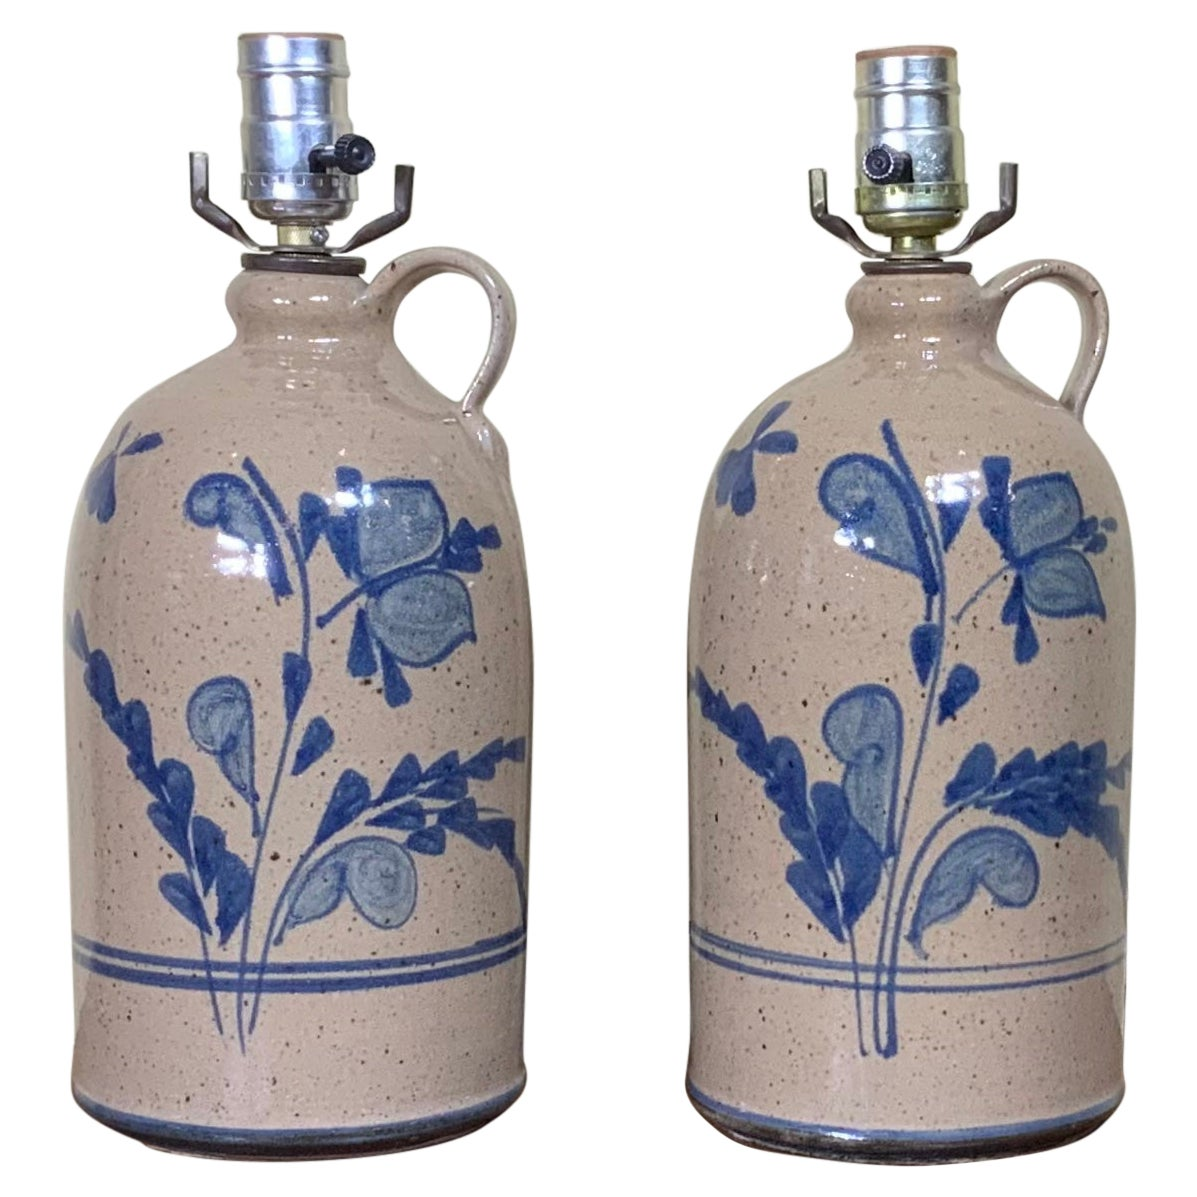 Pair of Vintage Ceramic Bottle Table Lamps 20th C